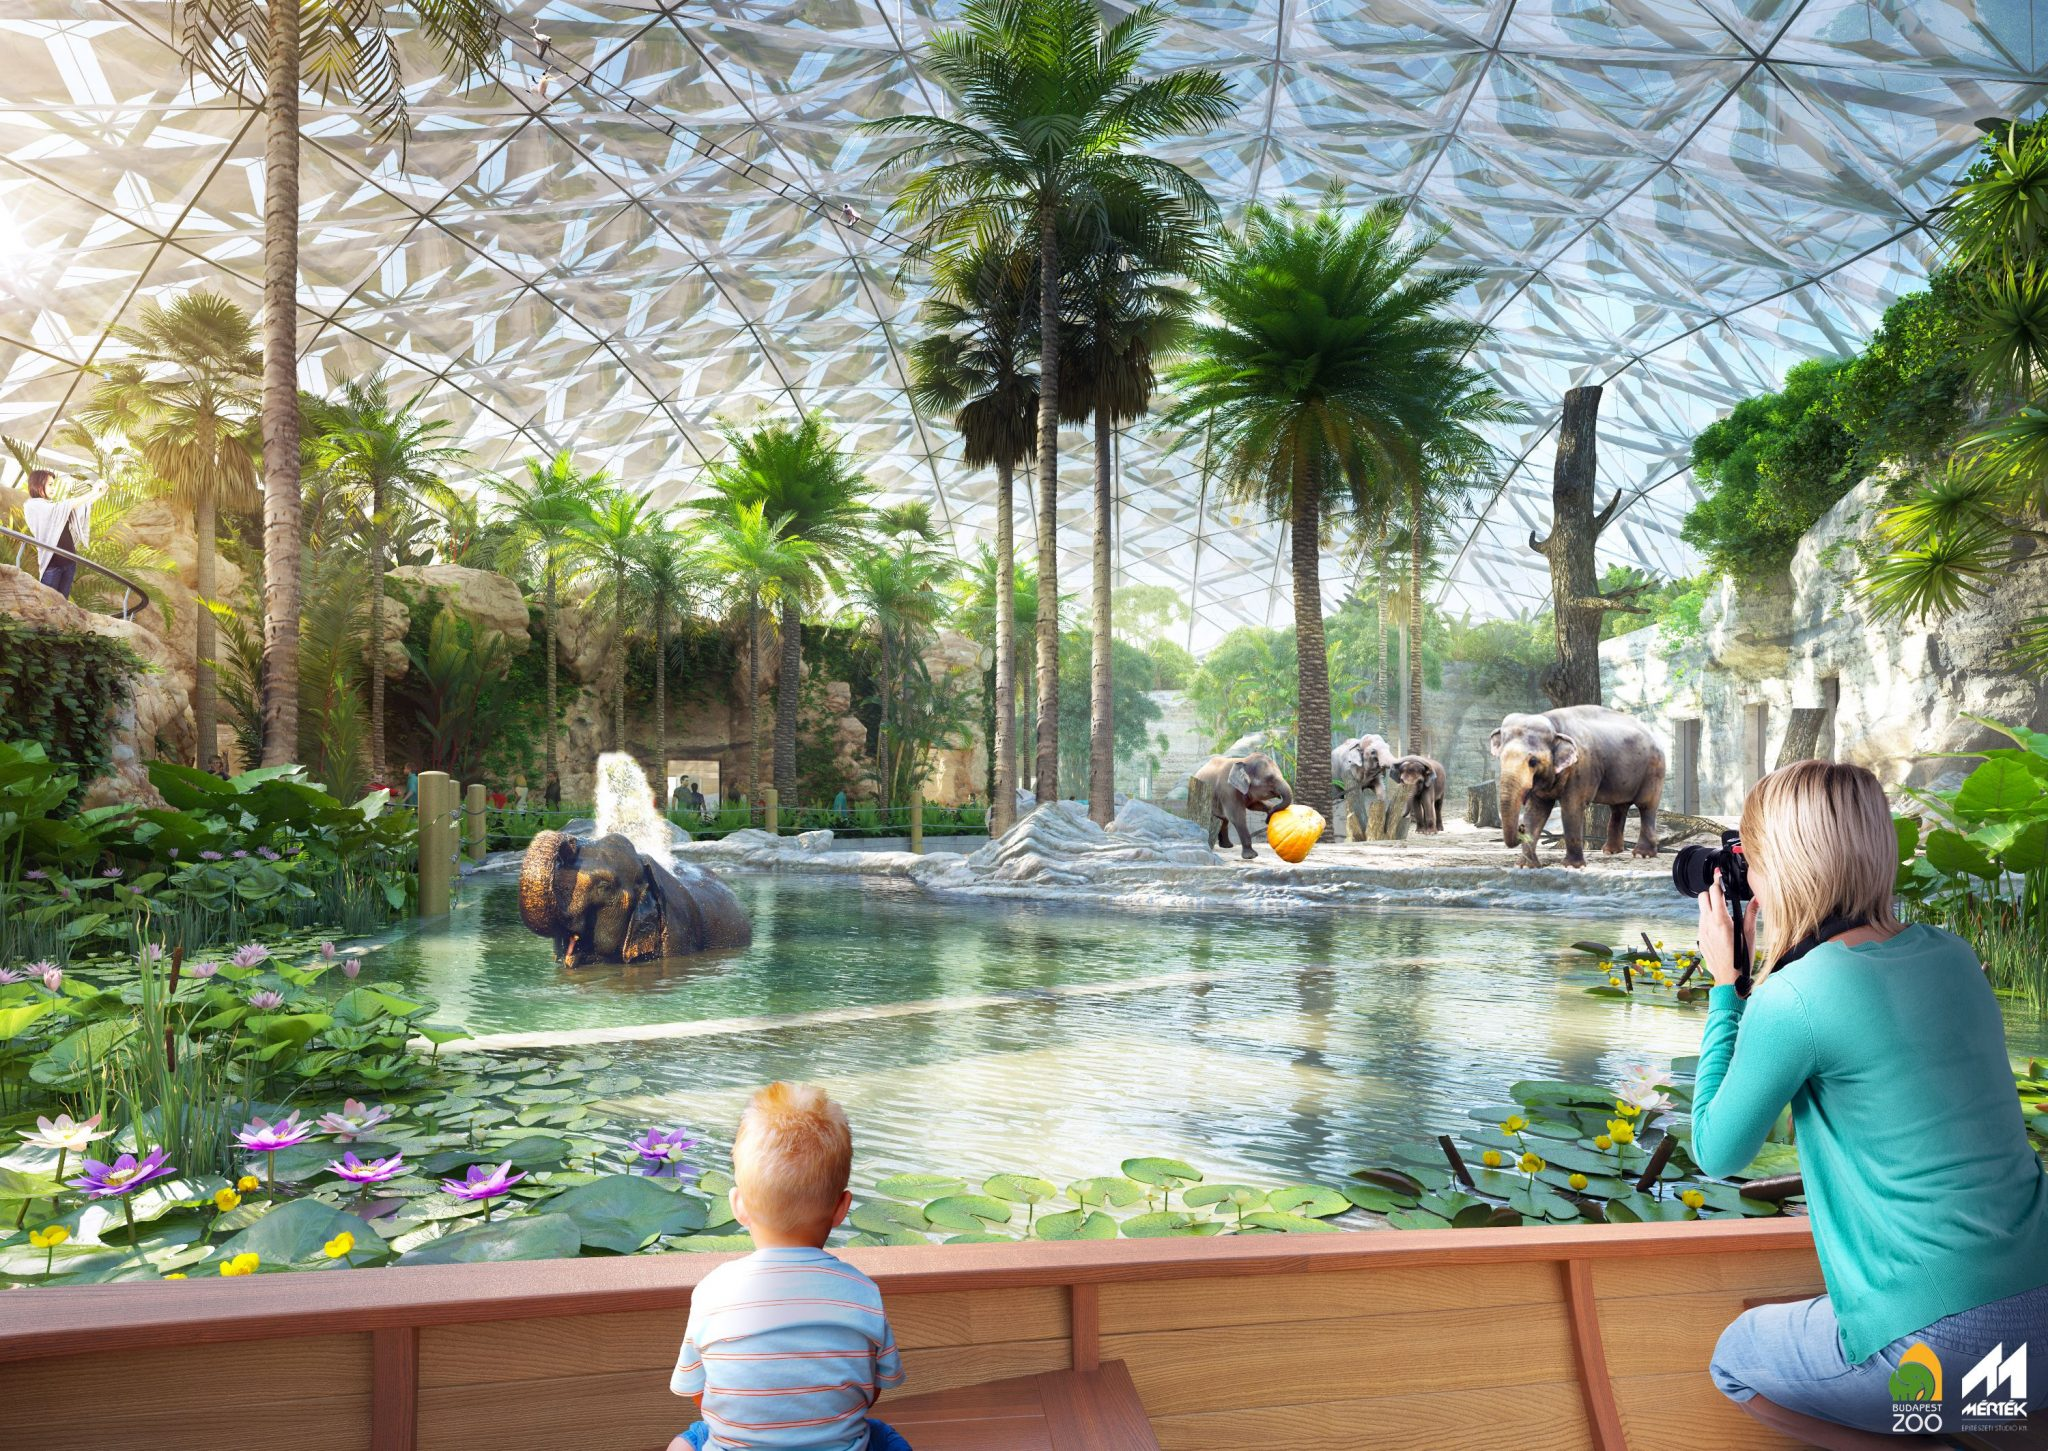 Completing Biodome Investment Project Less Costly than Projected, says Mayor Karácsony